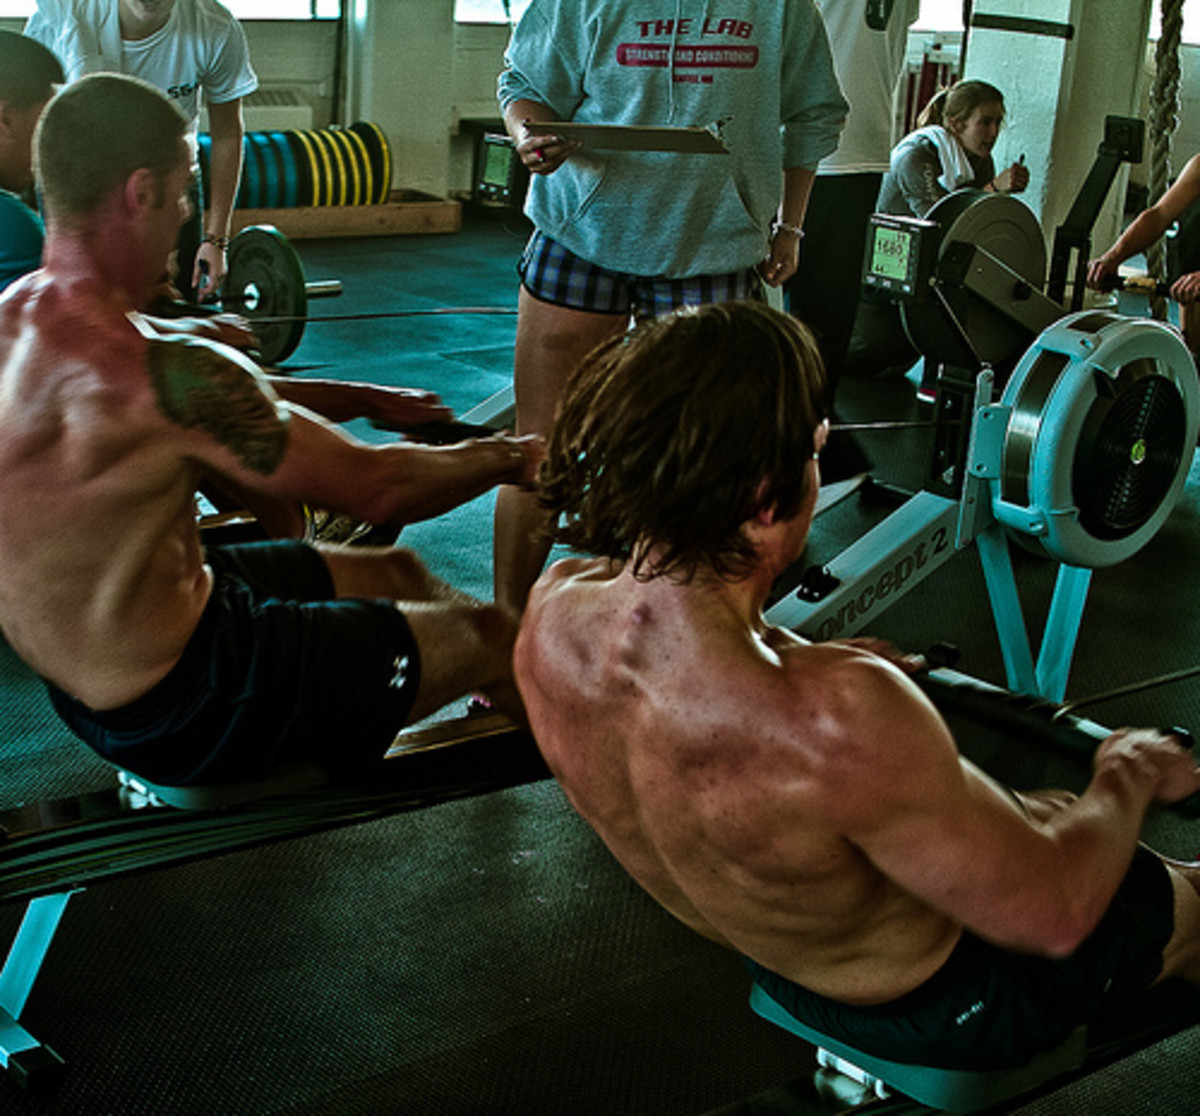 Rowing machines can help develop a great physique. They offer a great workout for many gym goers- Not just the superfit.